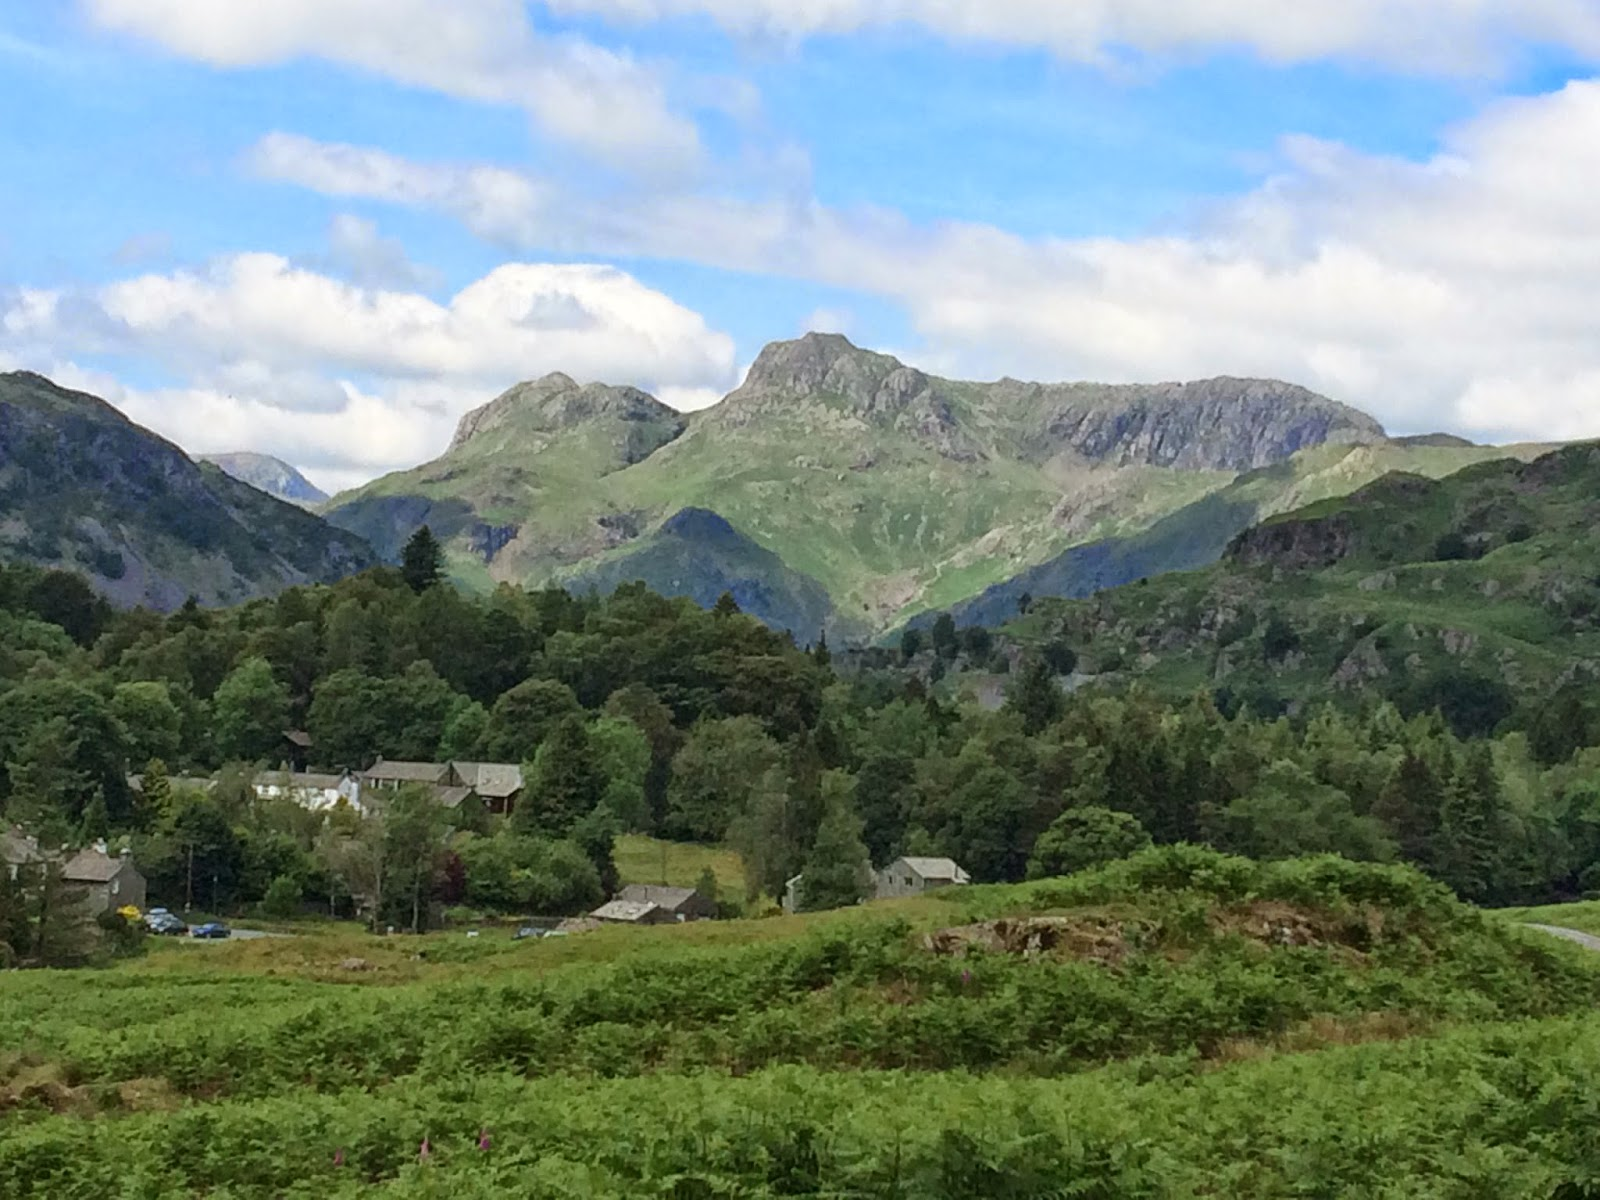 Inspiring mountains - The Langdale Pikes